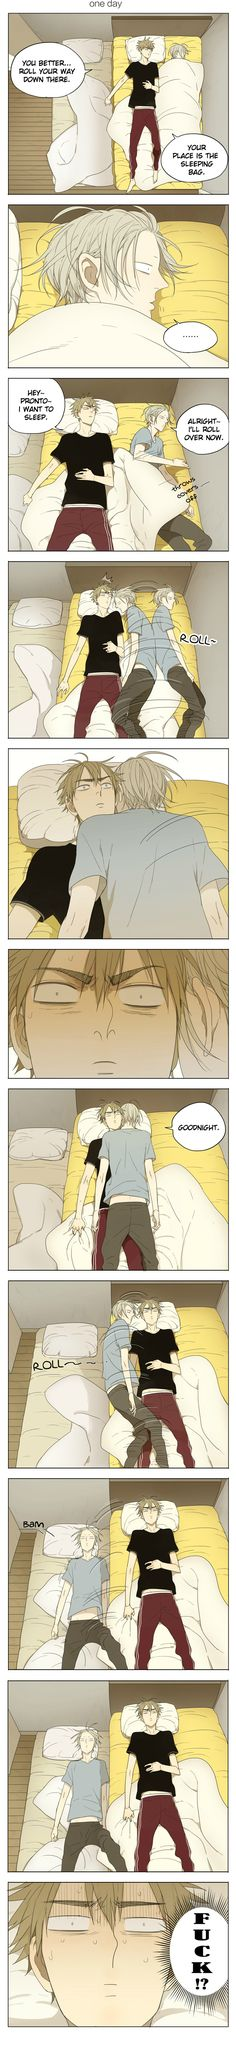 [Old Xian] 19 Days (update pg.92-104) [Eng] - Page 4 of 4 - My Reading Manga